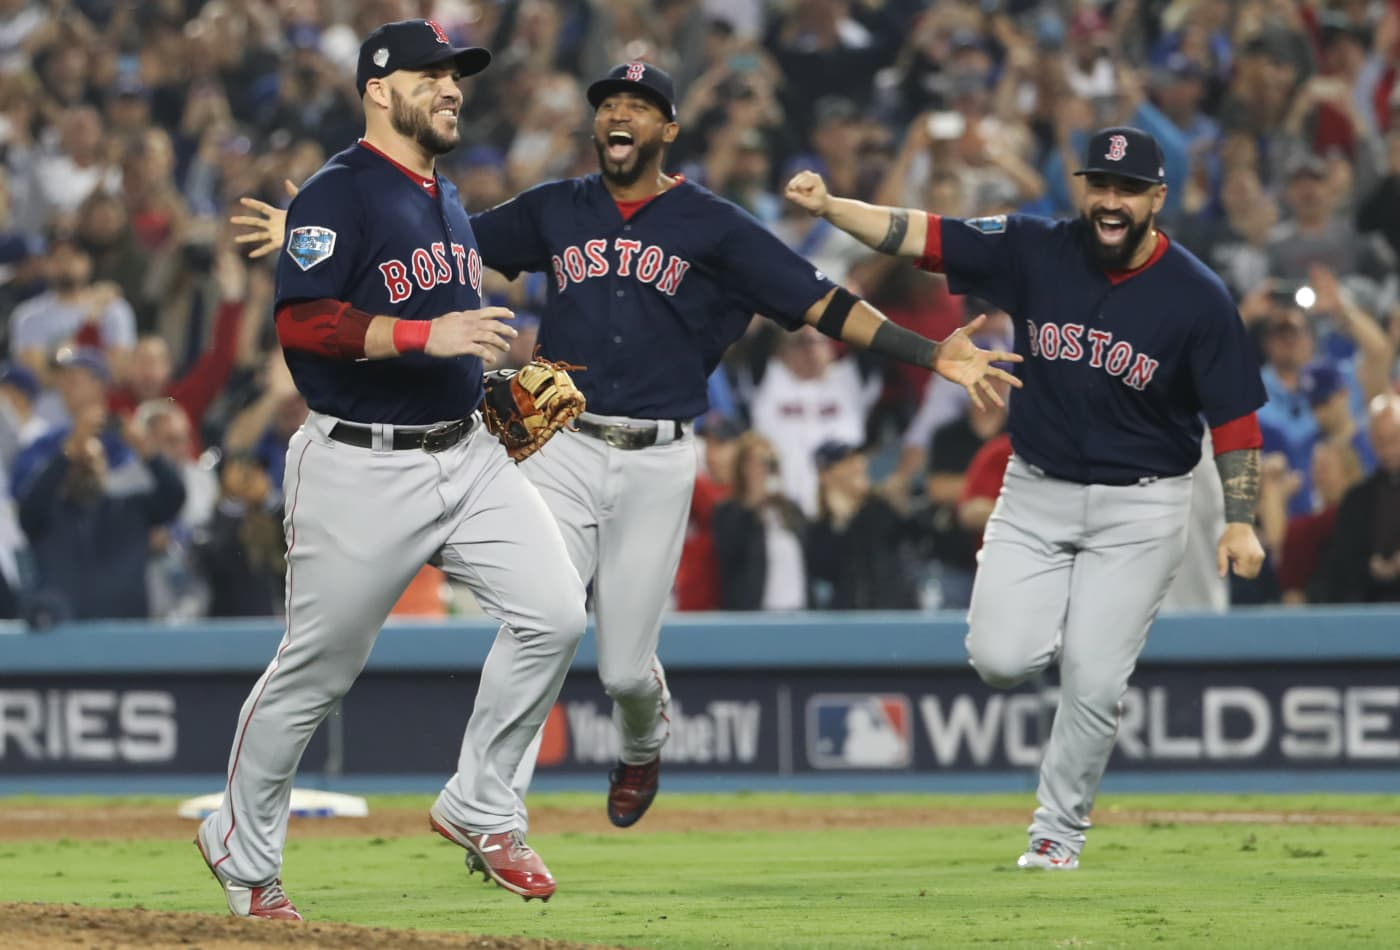 cbad92aa2 The Red Sox just won the World Series—here's how much money they'll earn